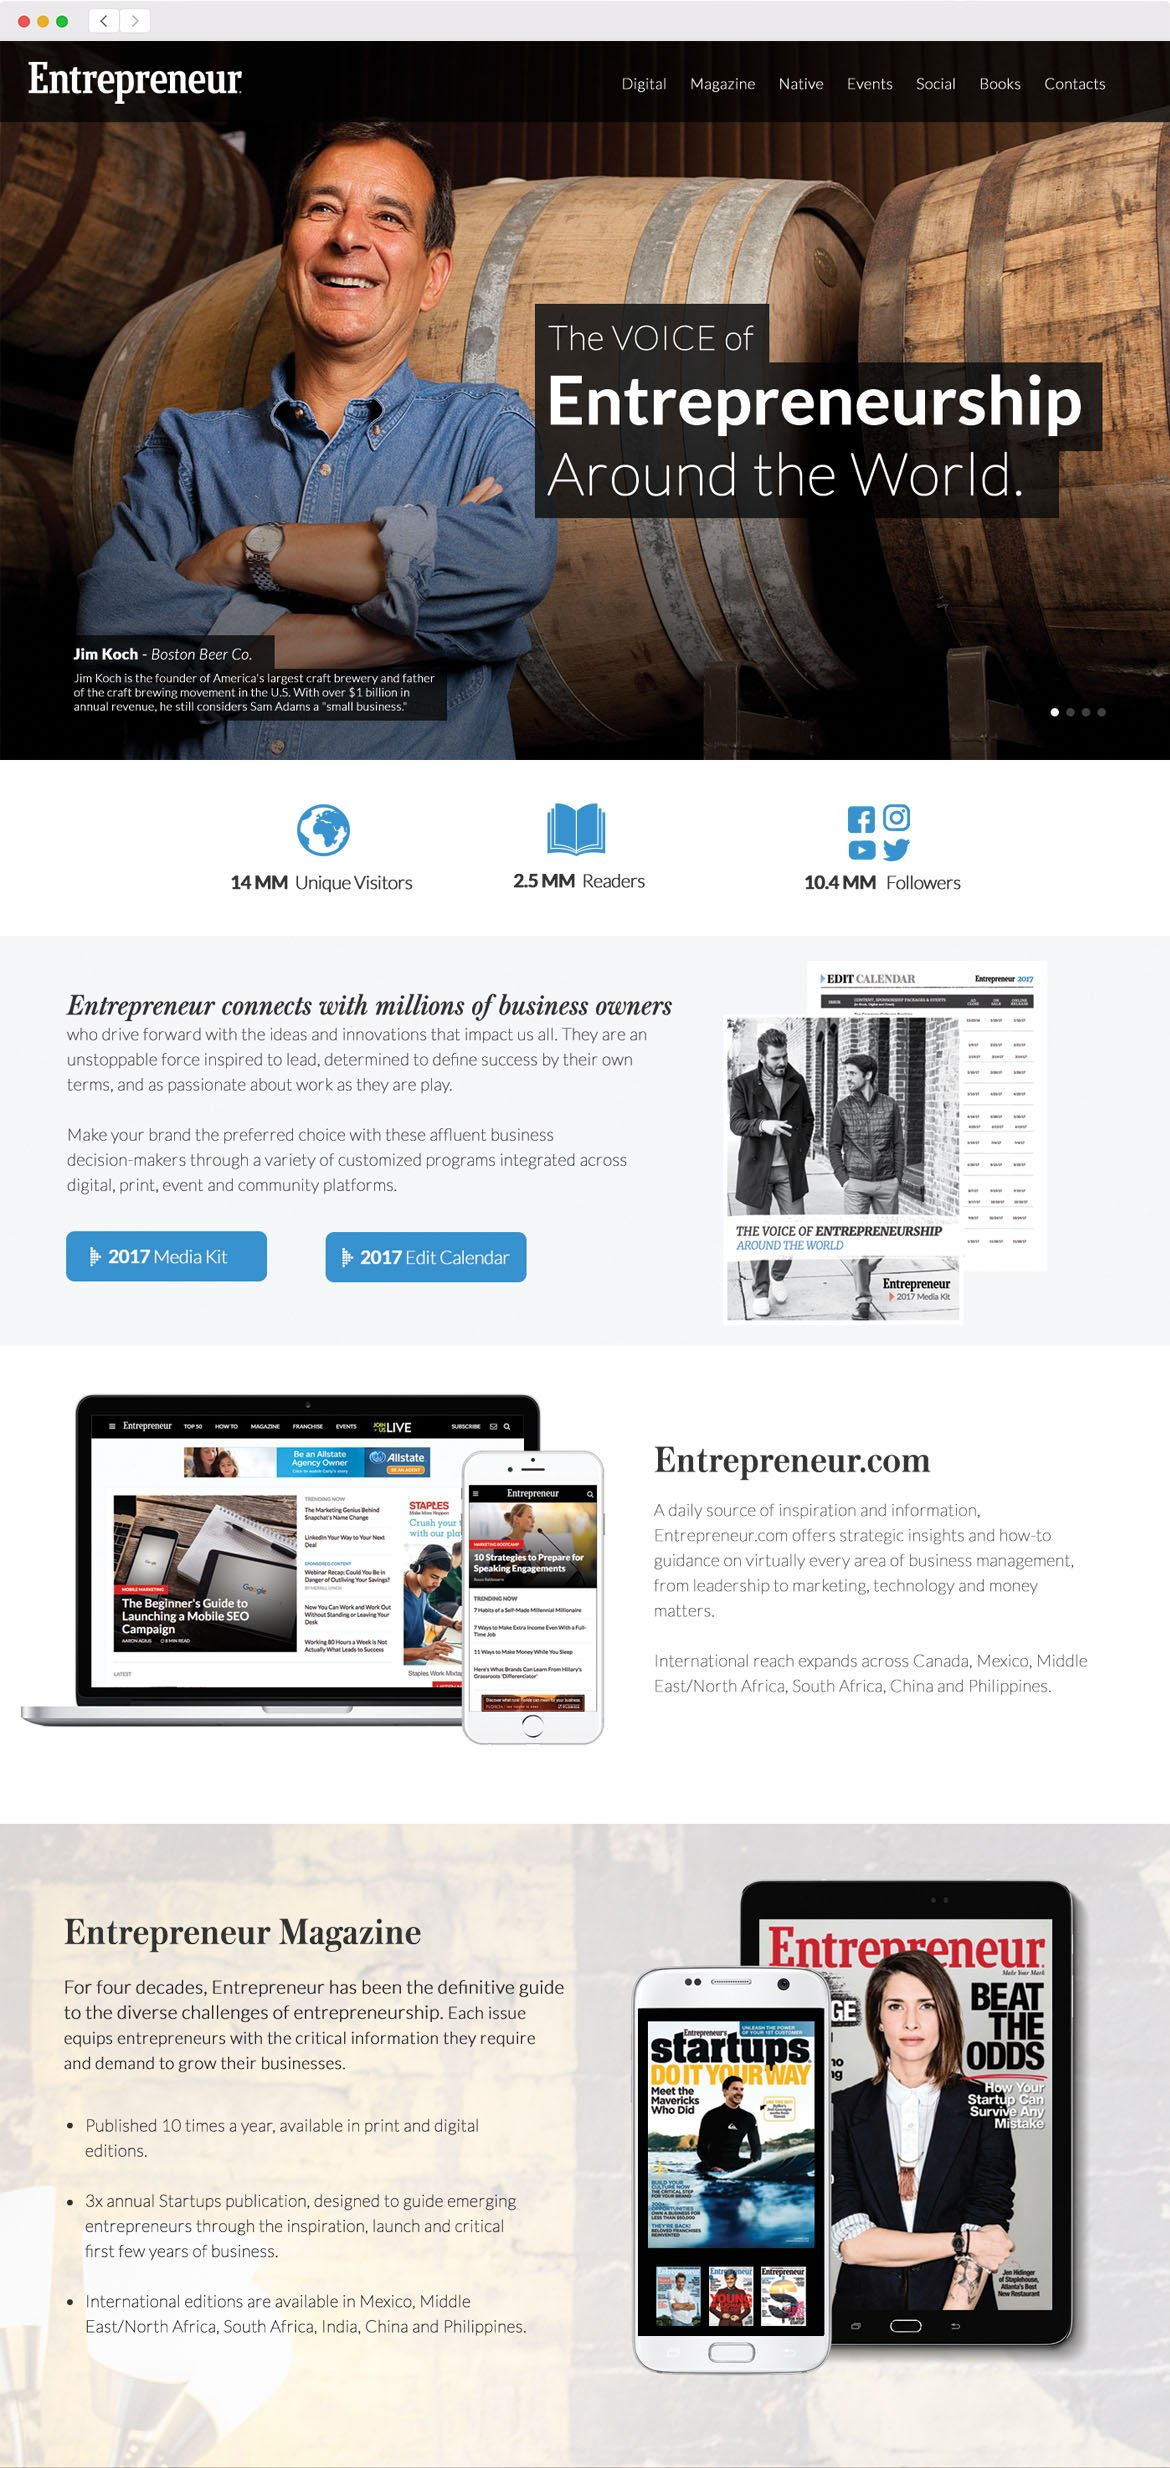 Entrepreneur Media Kit Website